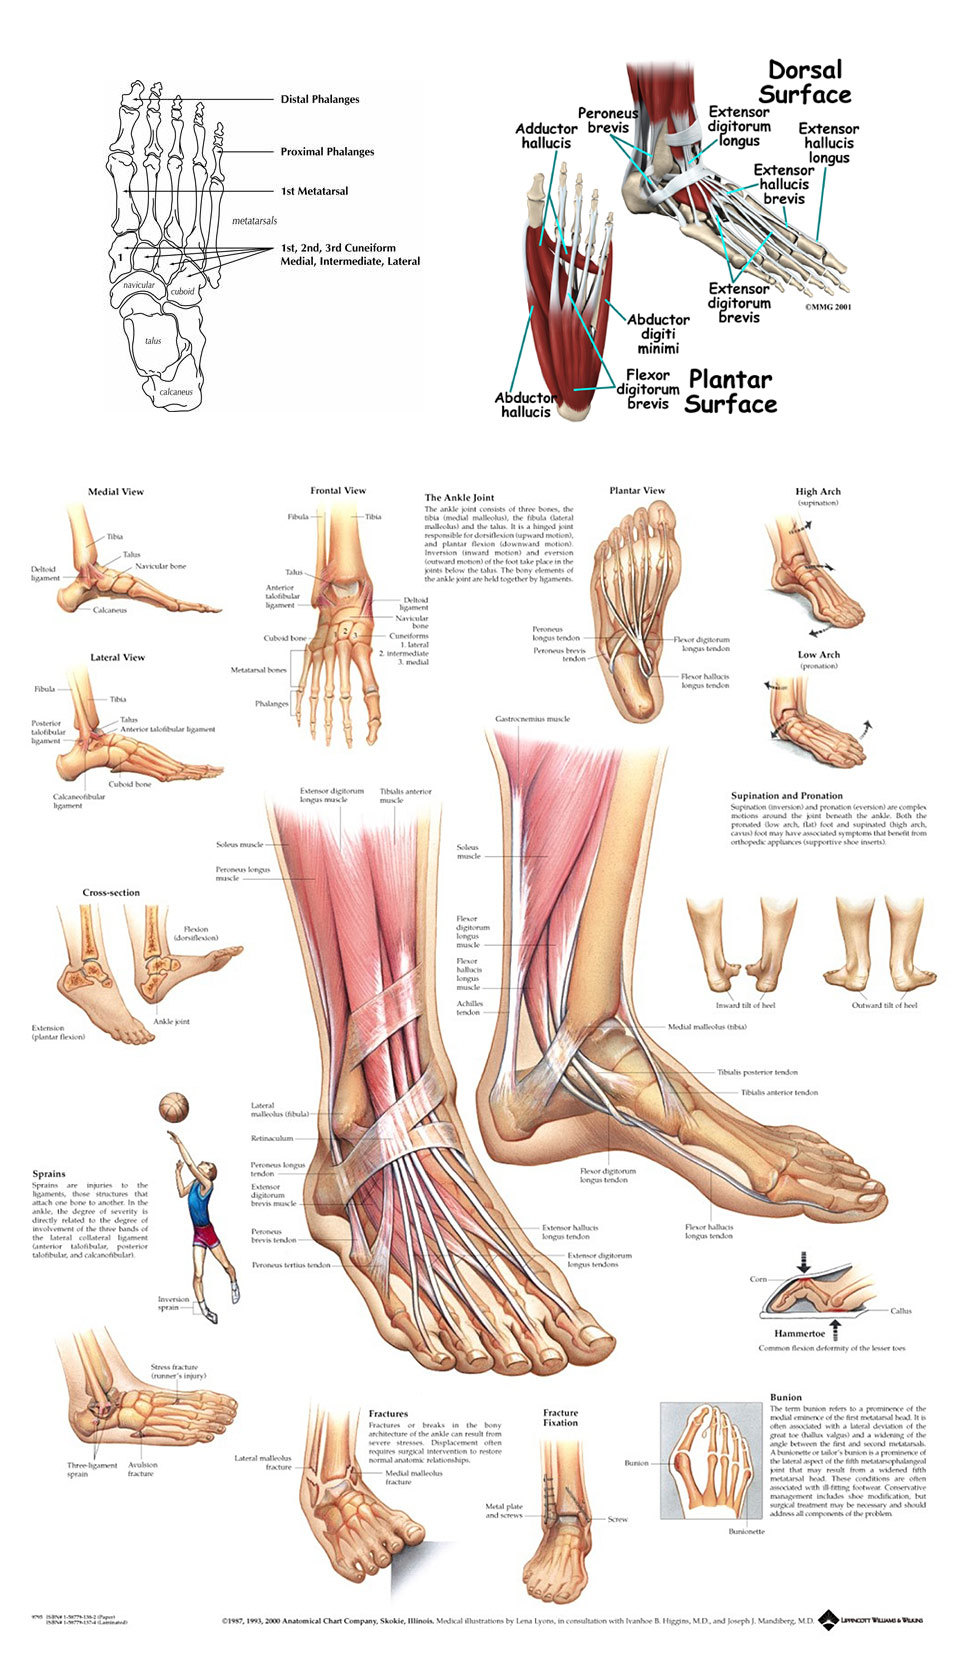 Anatomy of the Foot and Ankle Diagram